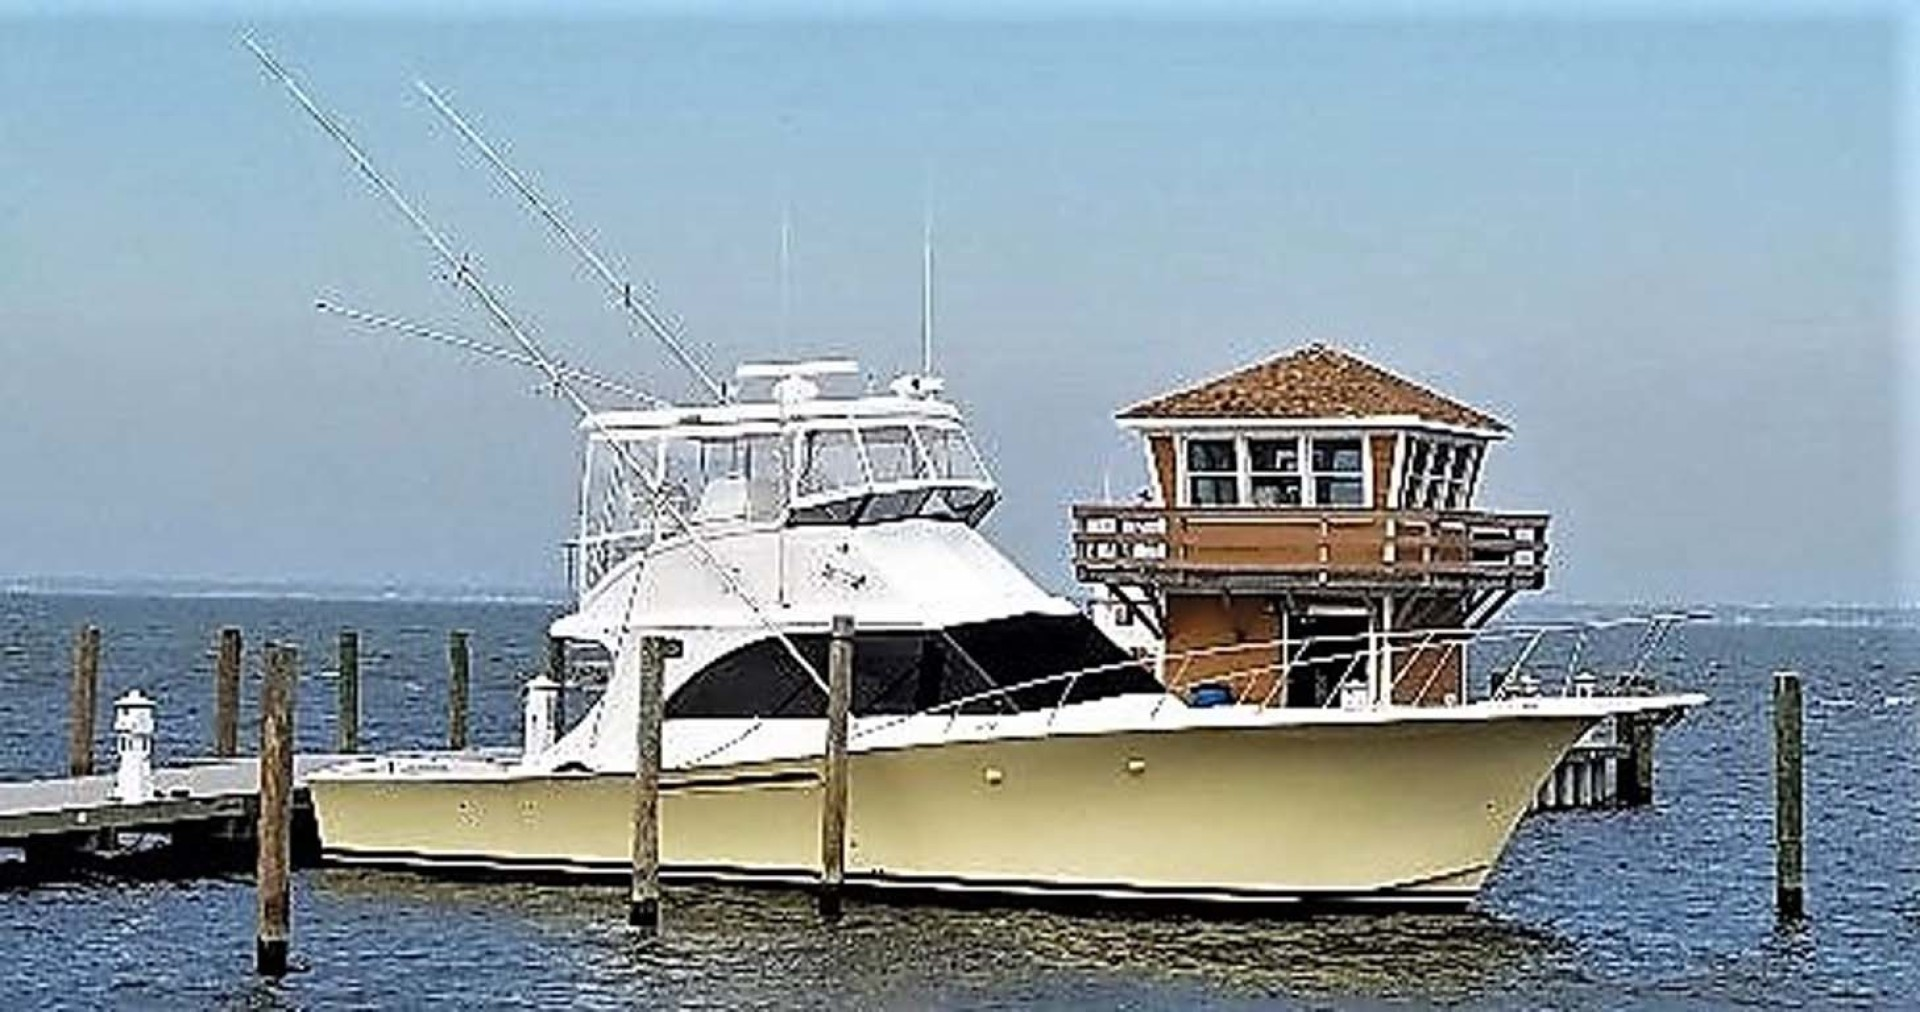 Jersey-42 Convertible Sportfisherman 1990-Mr. Breeze Center Moriches-New York-United States-Starboard Profile-1346348 | Thumbnail